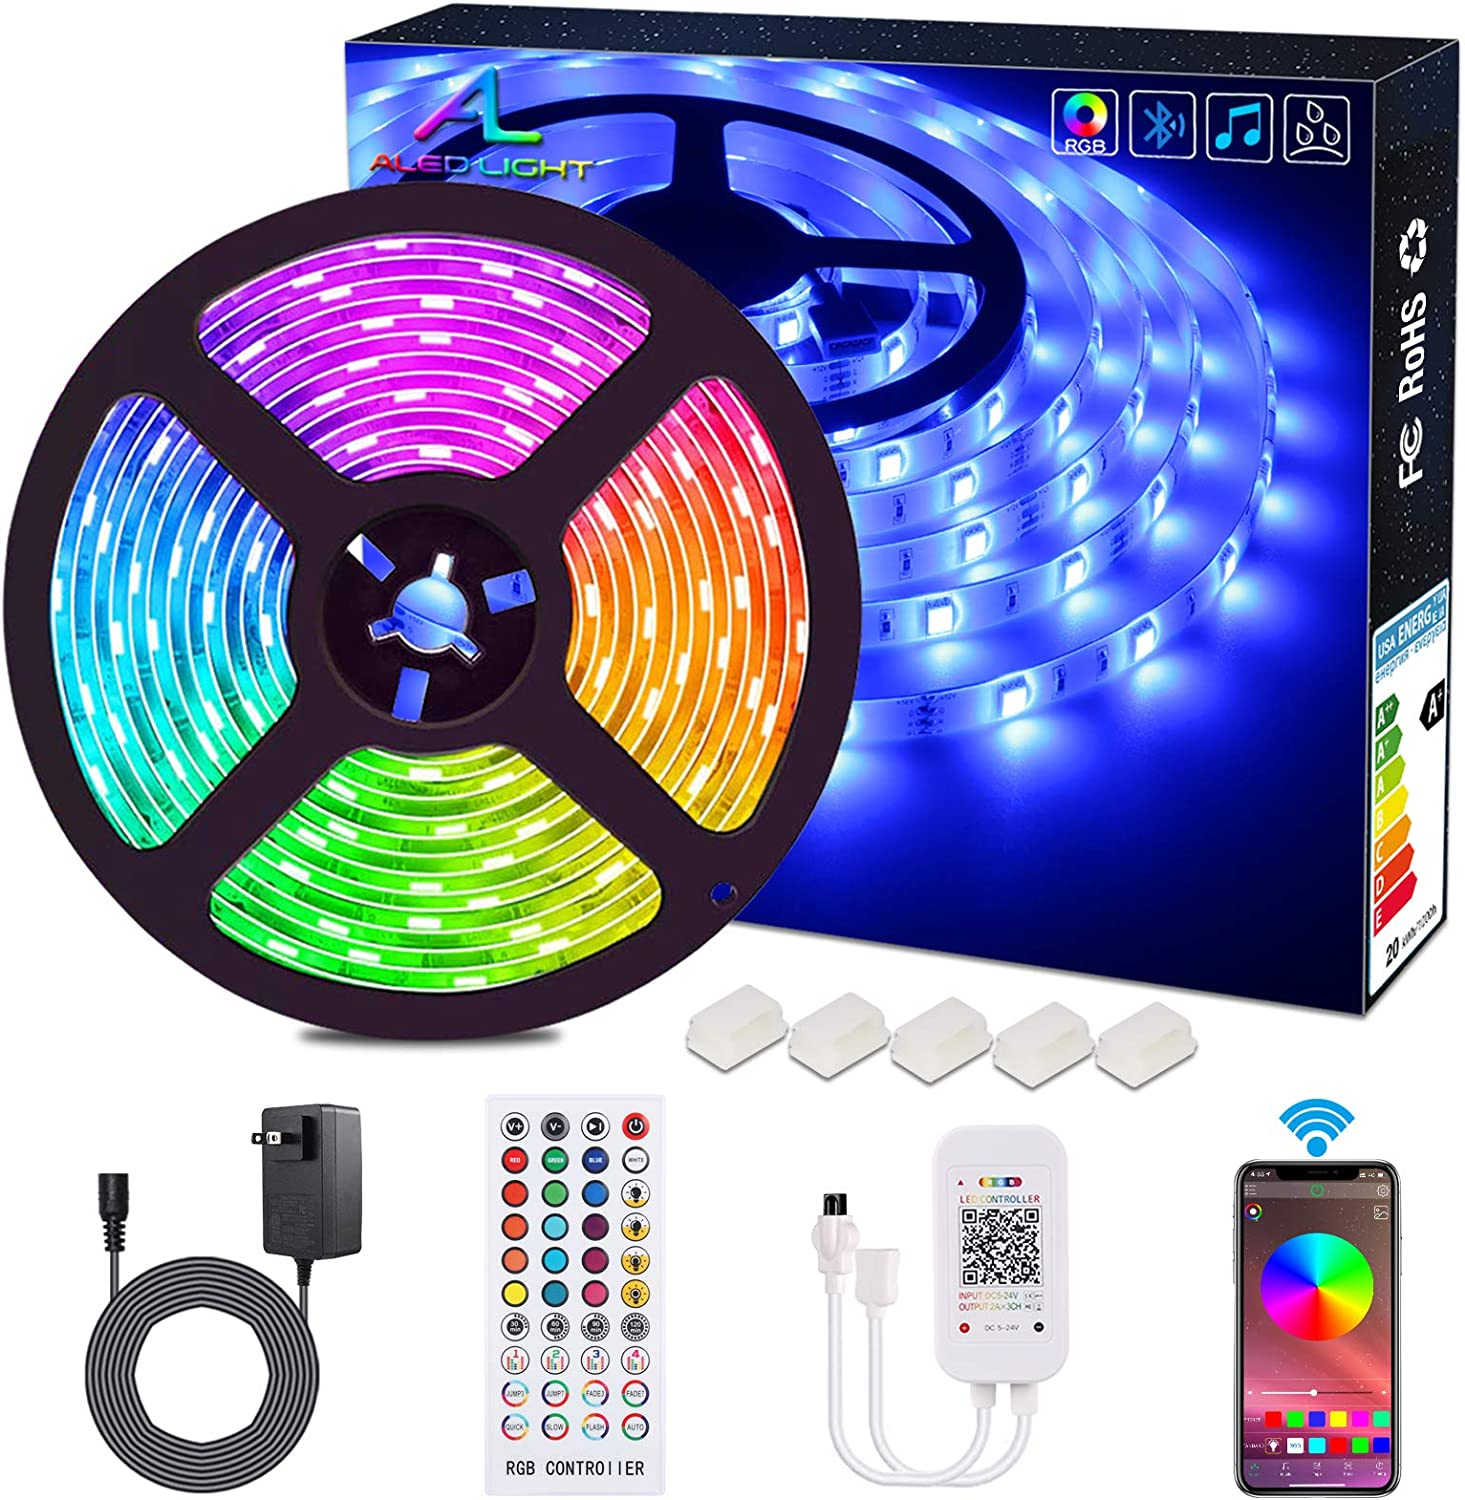 Amazon Com Bluetooth Led Strip Lights Aled Light 5050 16 4 Ft 5 Meter 150 Led Stripes Lights Smart Phone Controlled Waterproof Rgb Led Band Light For Home Outdoor Decoration Home Improvement